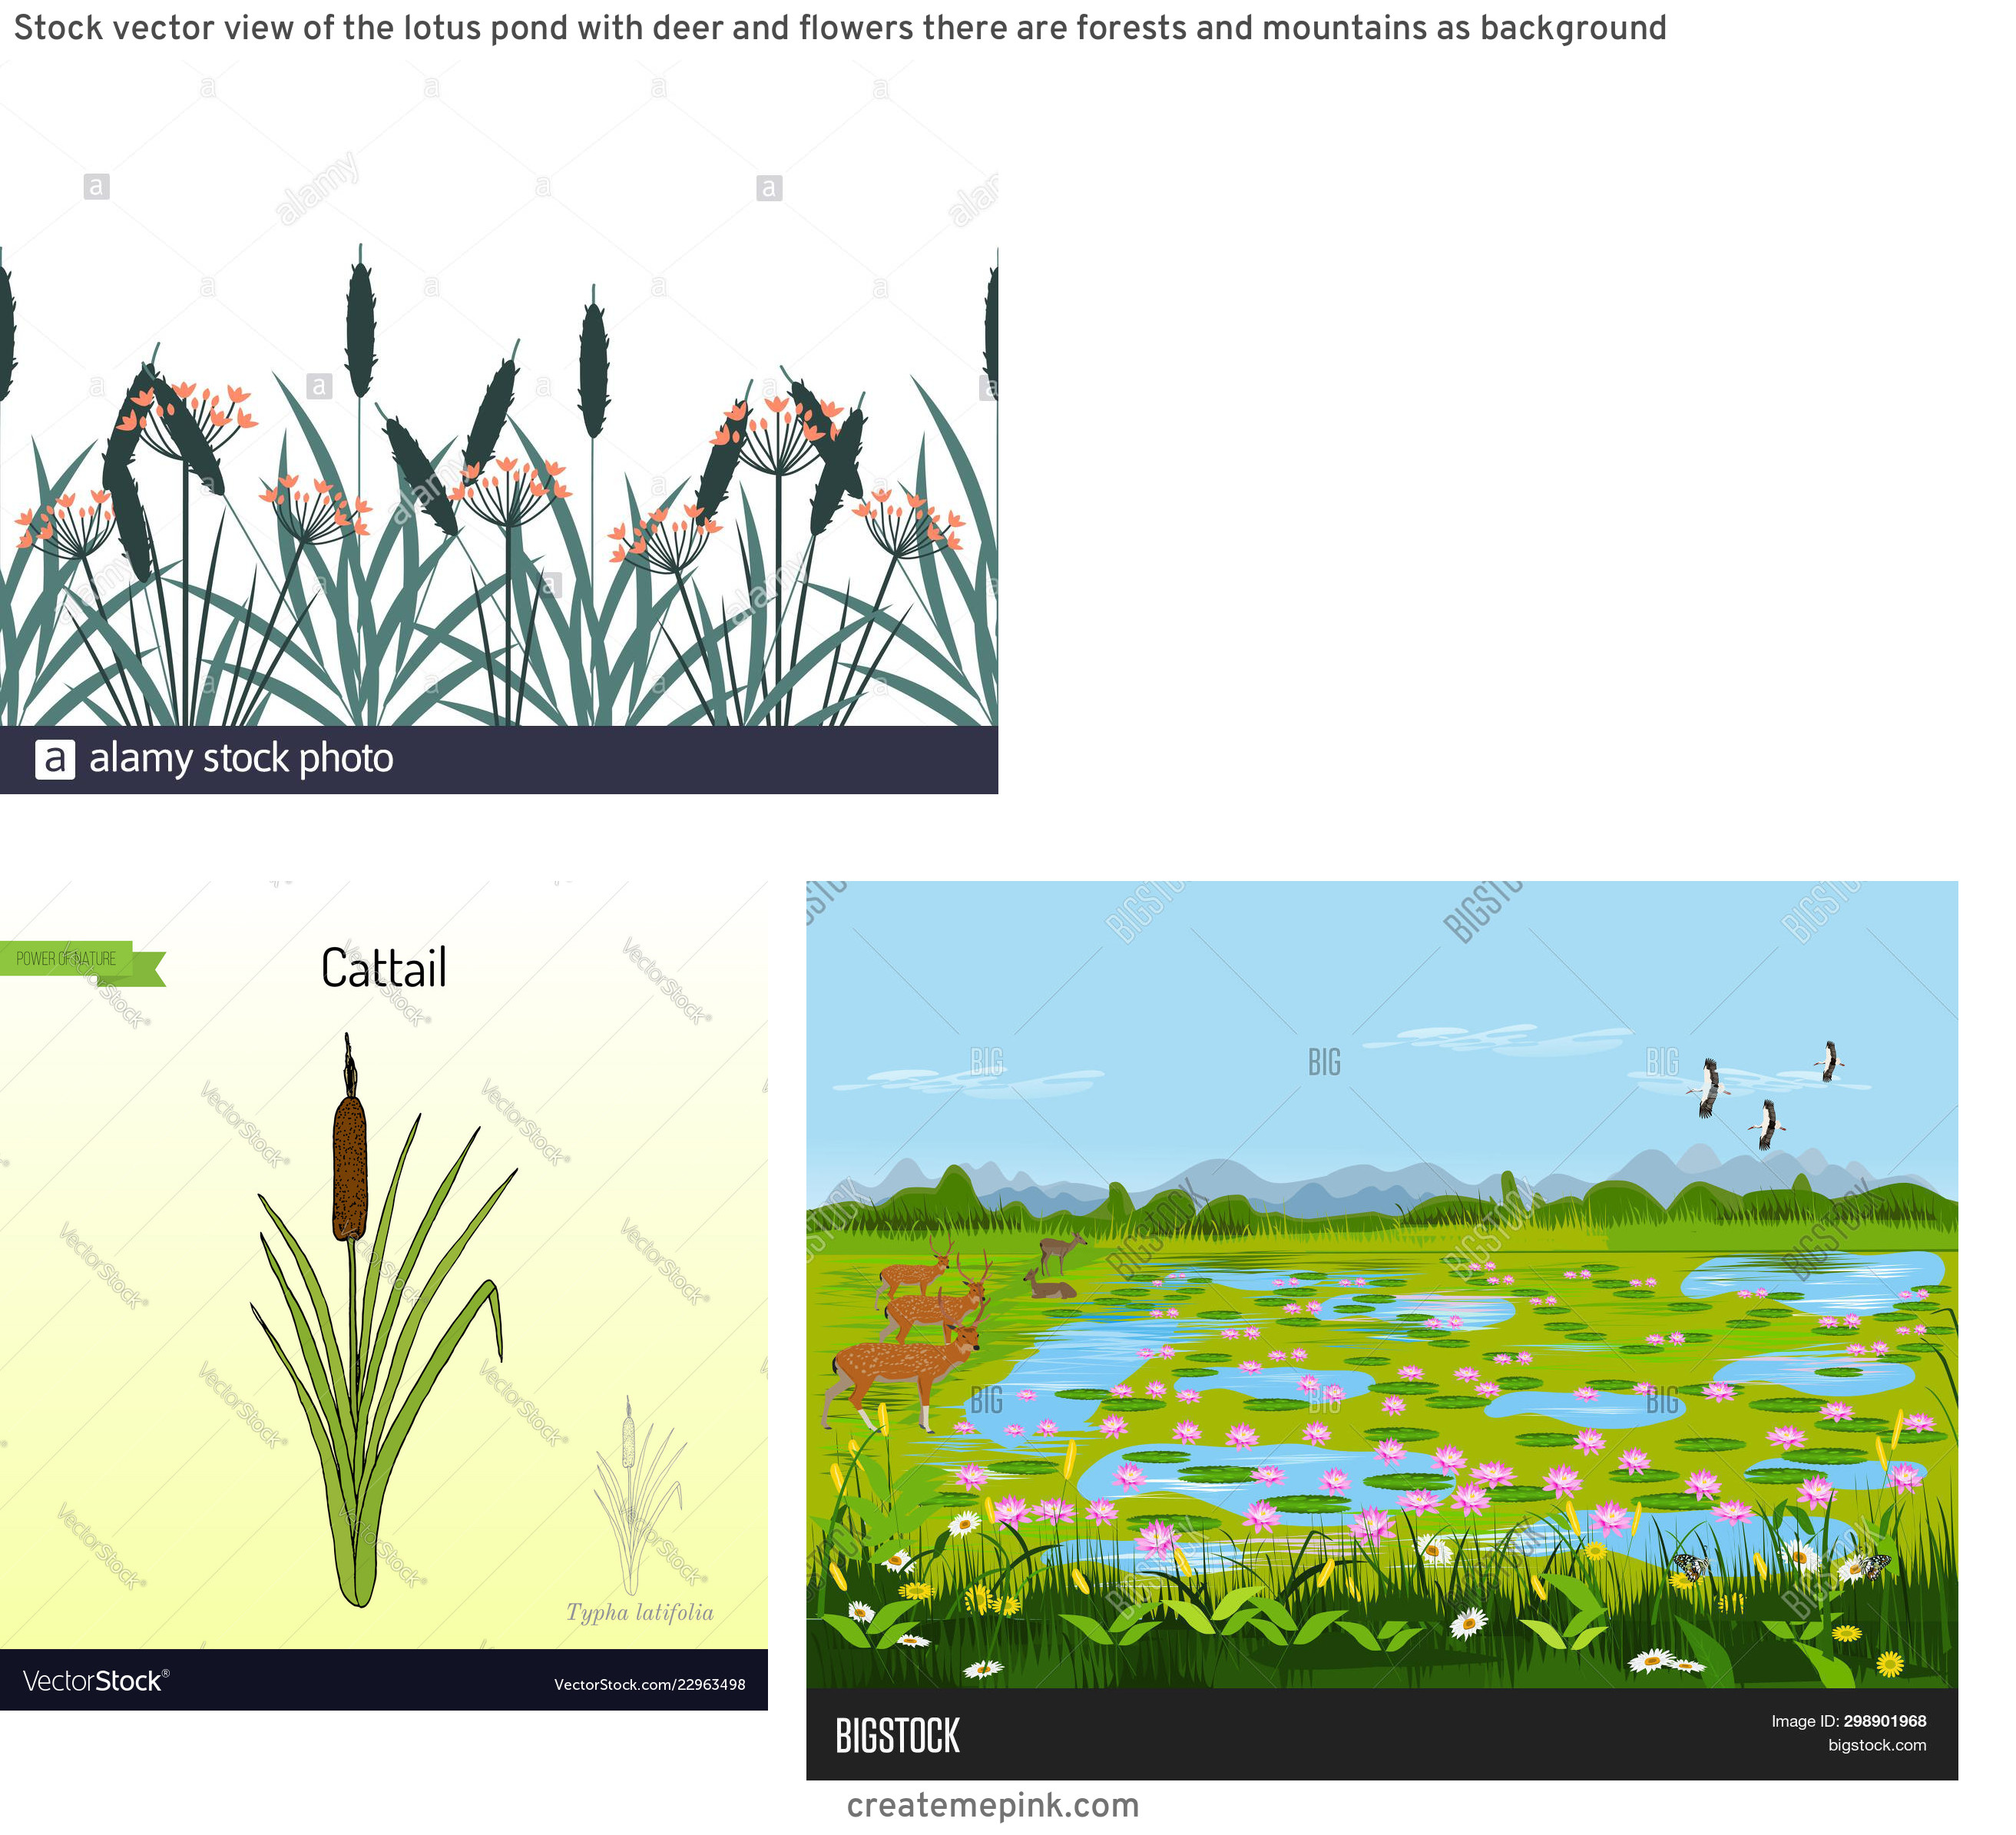 Vector Wetland: Stock Vector View Of The Lotus Pond With Deer And Flowers There Are Forests And Mountains As Background